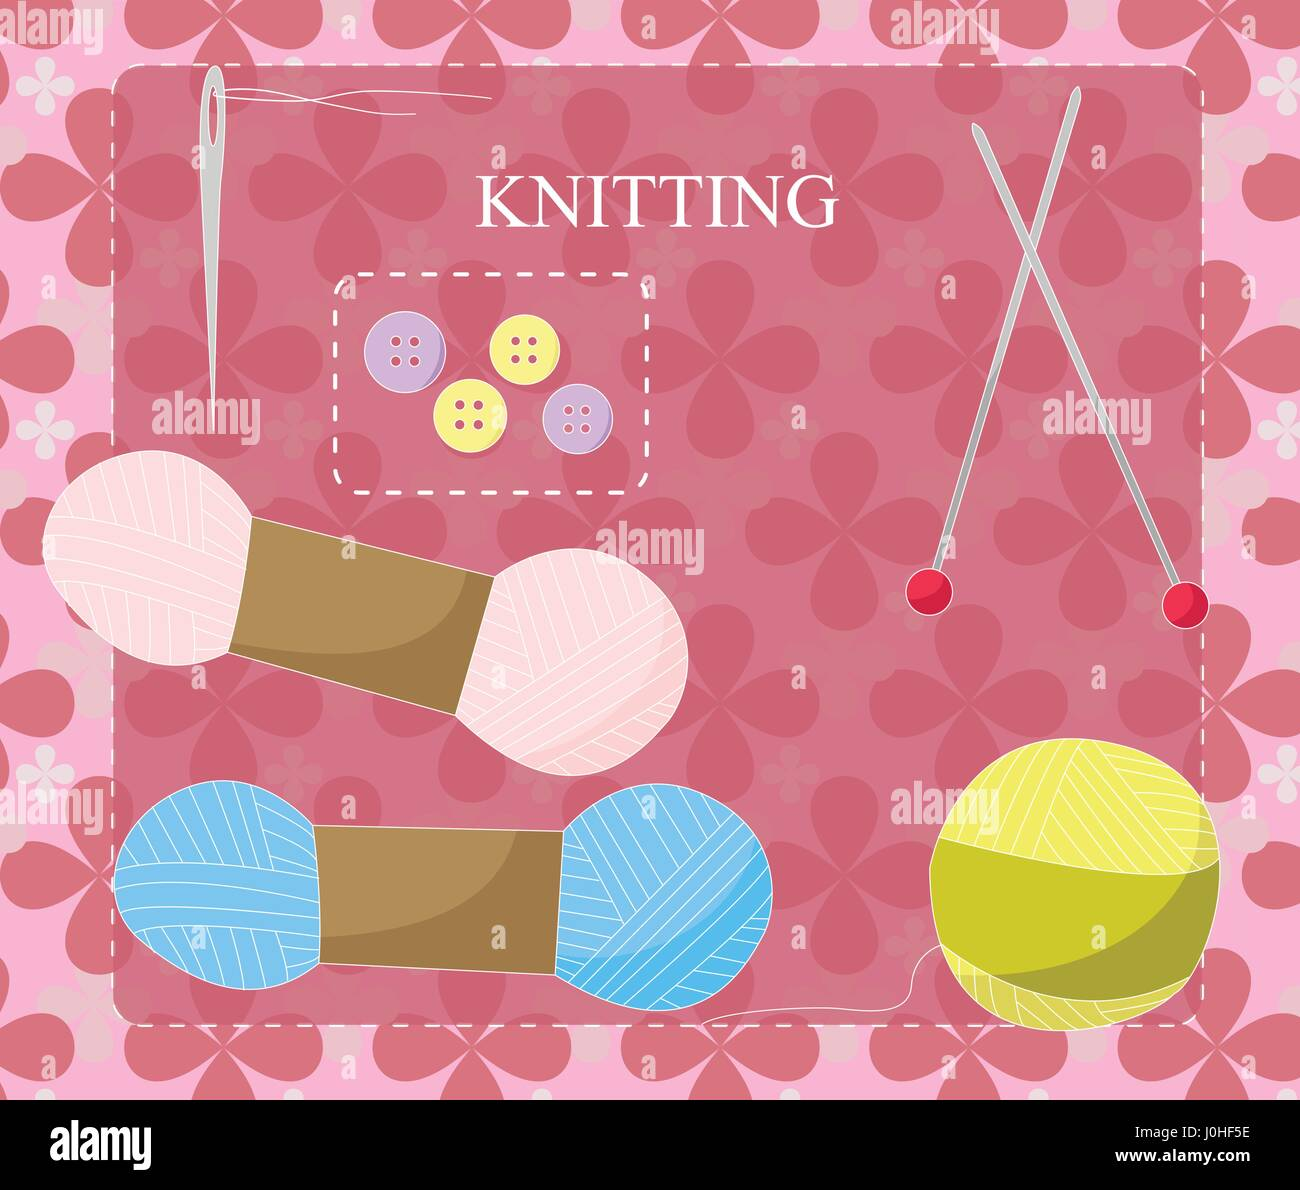 Knitting equipment icon - Stock Vector